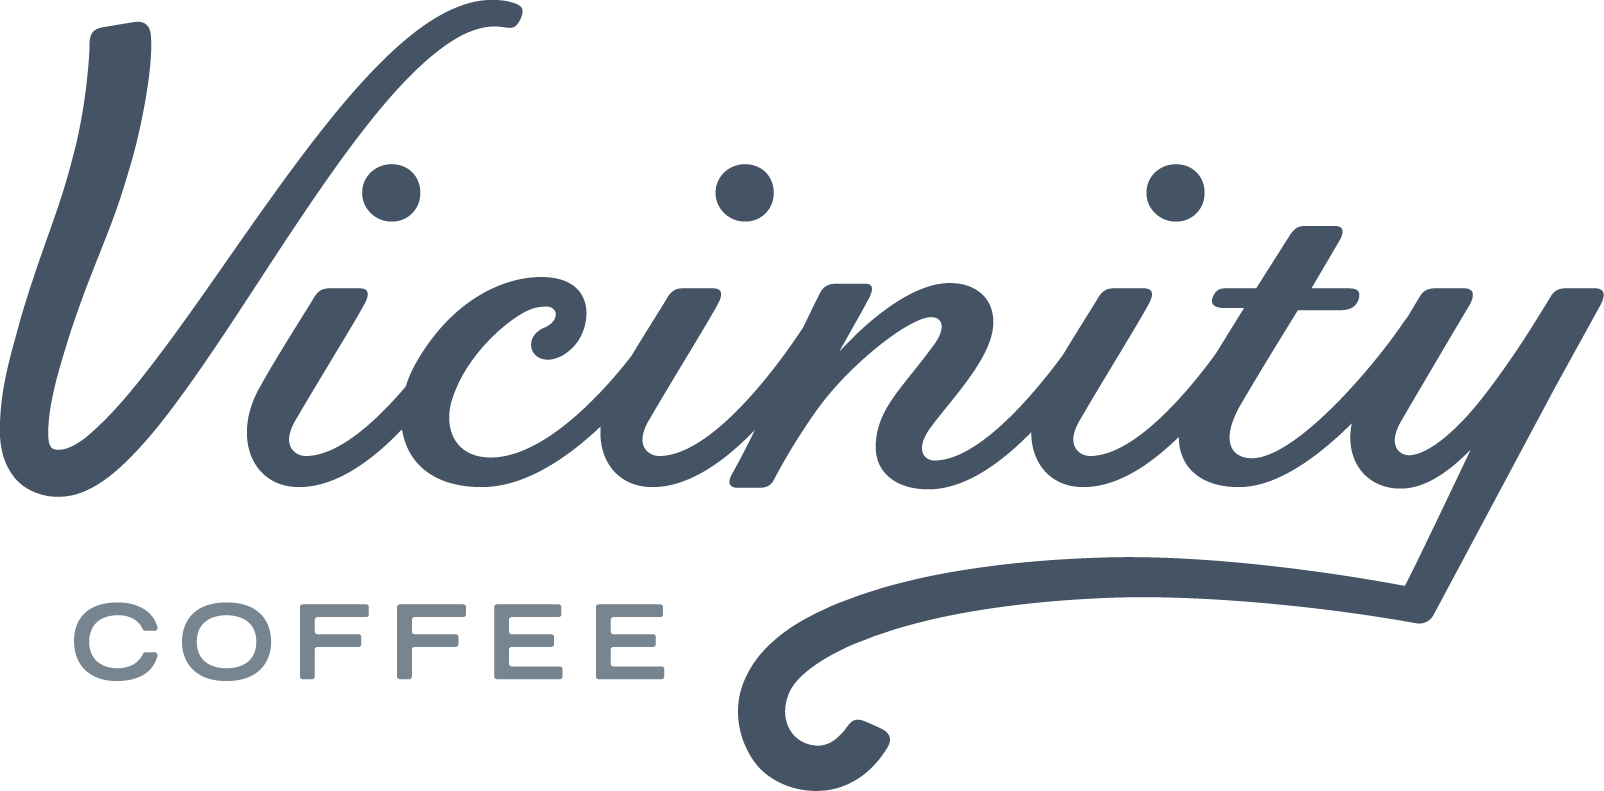 Vicinity Coffee